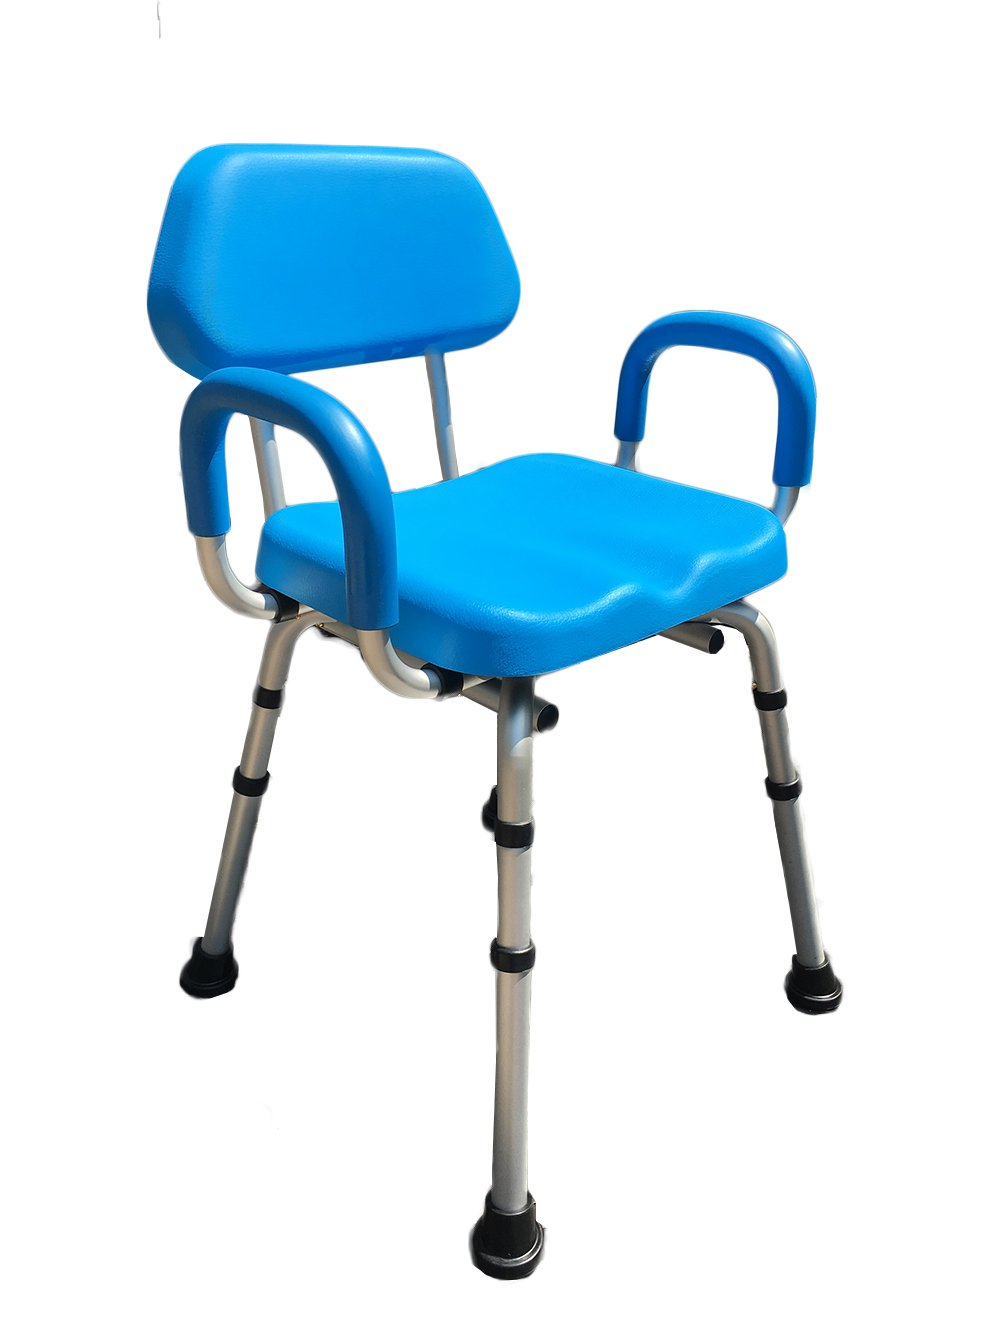 Shower Chair, Bath Chair, Padded with Armrests, Comfortable(tm) Deluxe Shower Chair. Institutional Quality. by Platinum Health